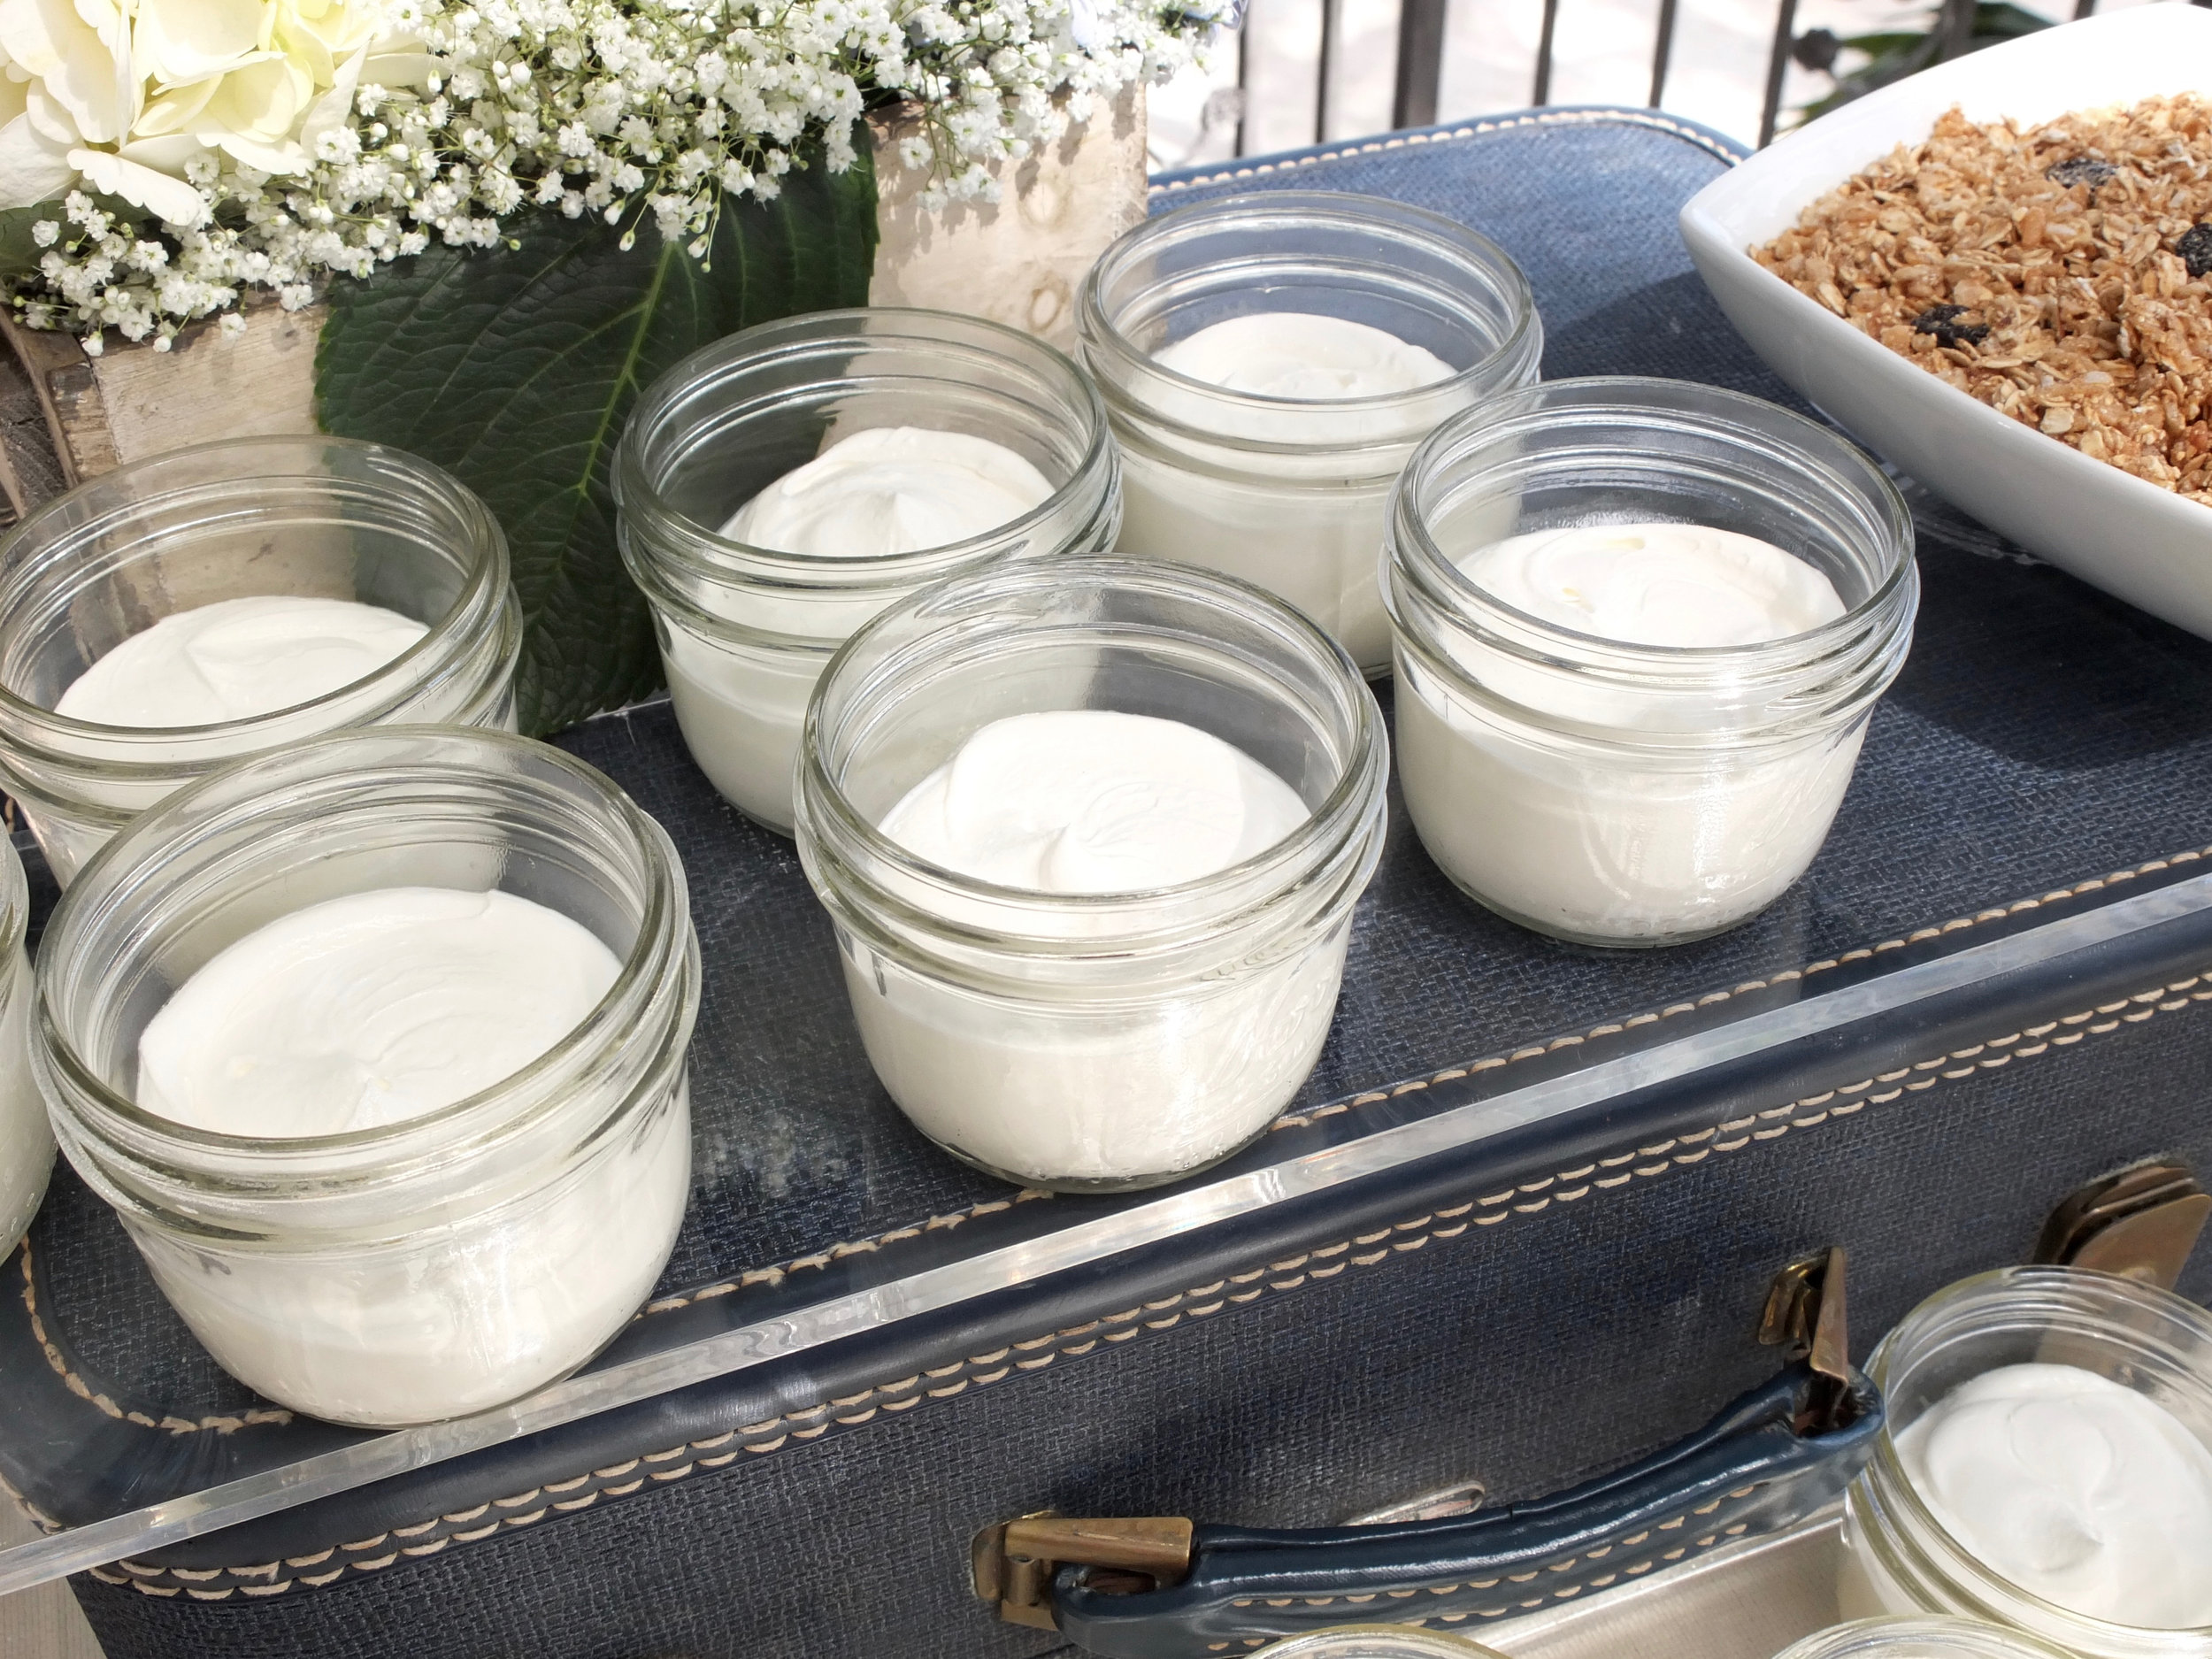 Mason Jar Yogurt Parfaits with Sides of Granola and Seasonal Fresh Fruit were displayed on antique luggage from Unearthed Vintage's collection.